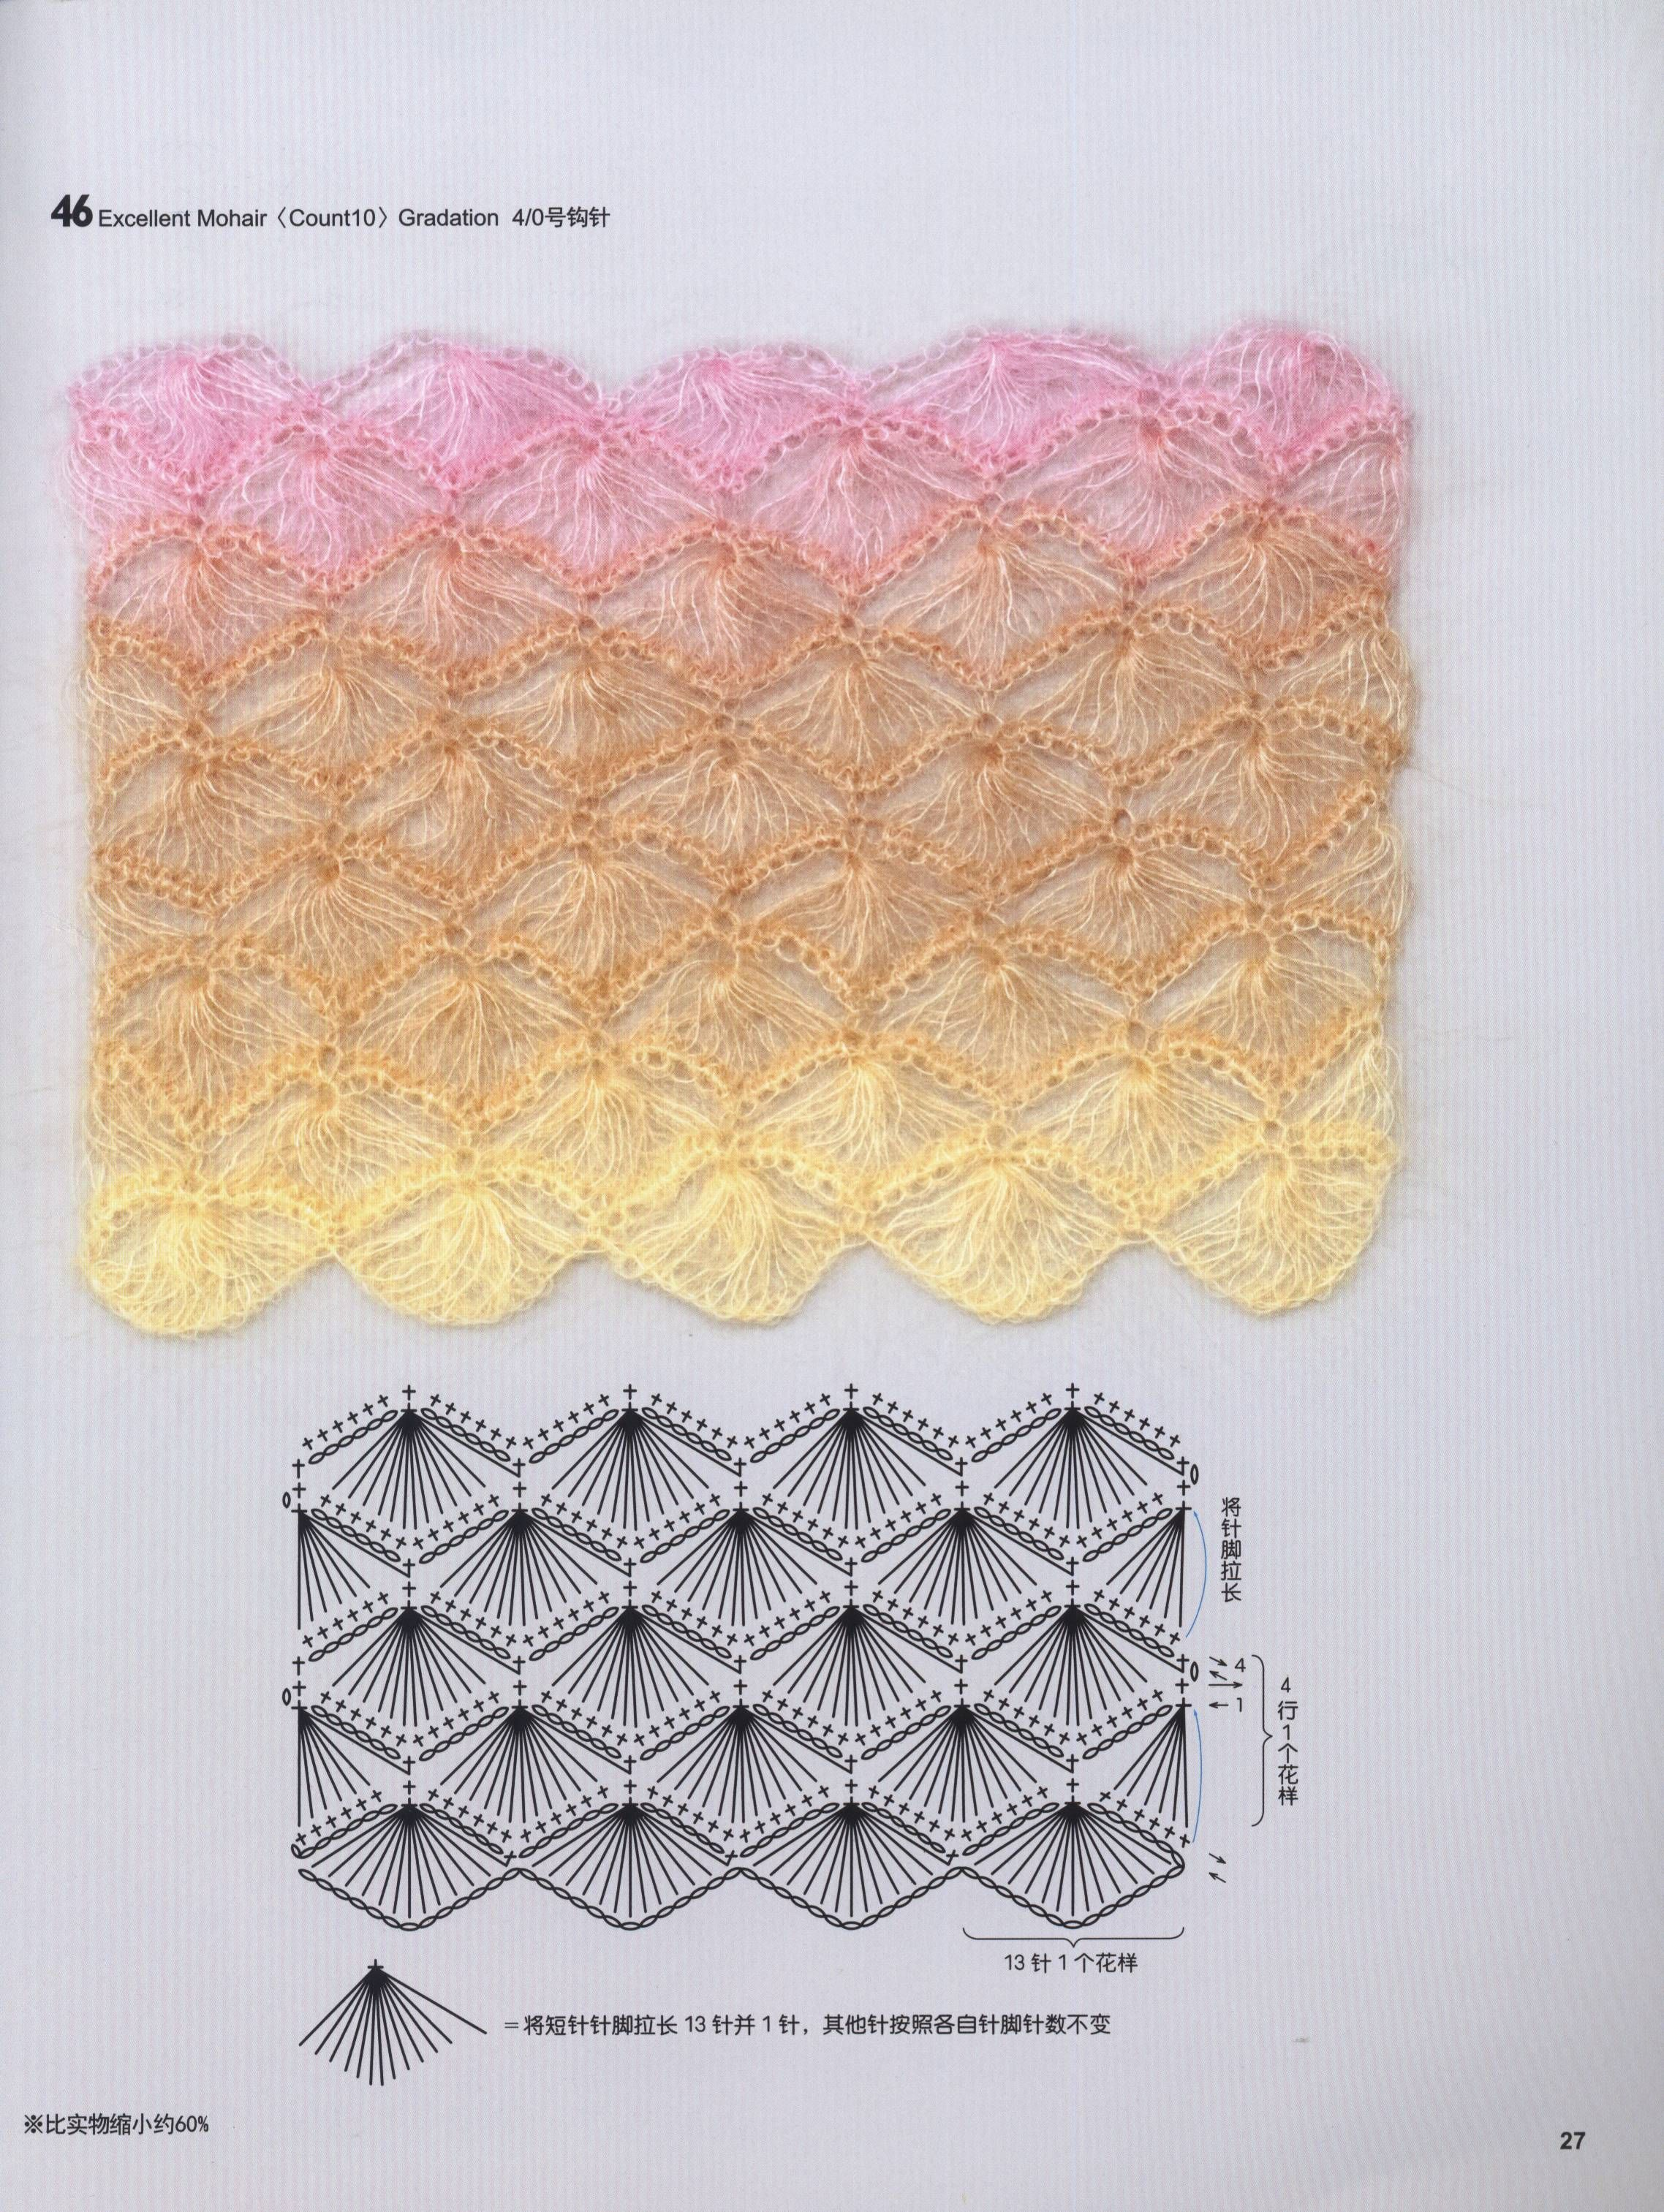 Imgbox fast simple image host needlecraft books crochet crochet chart ccuart Image collections